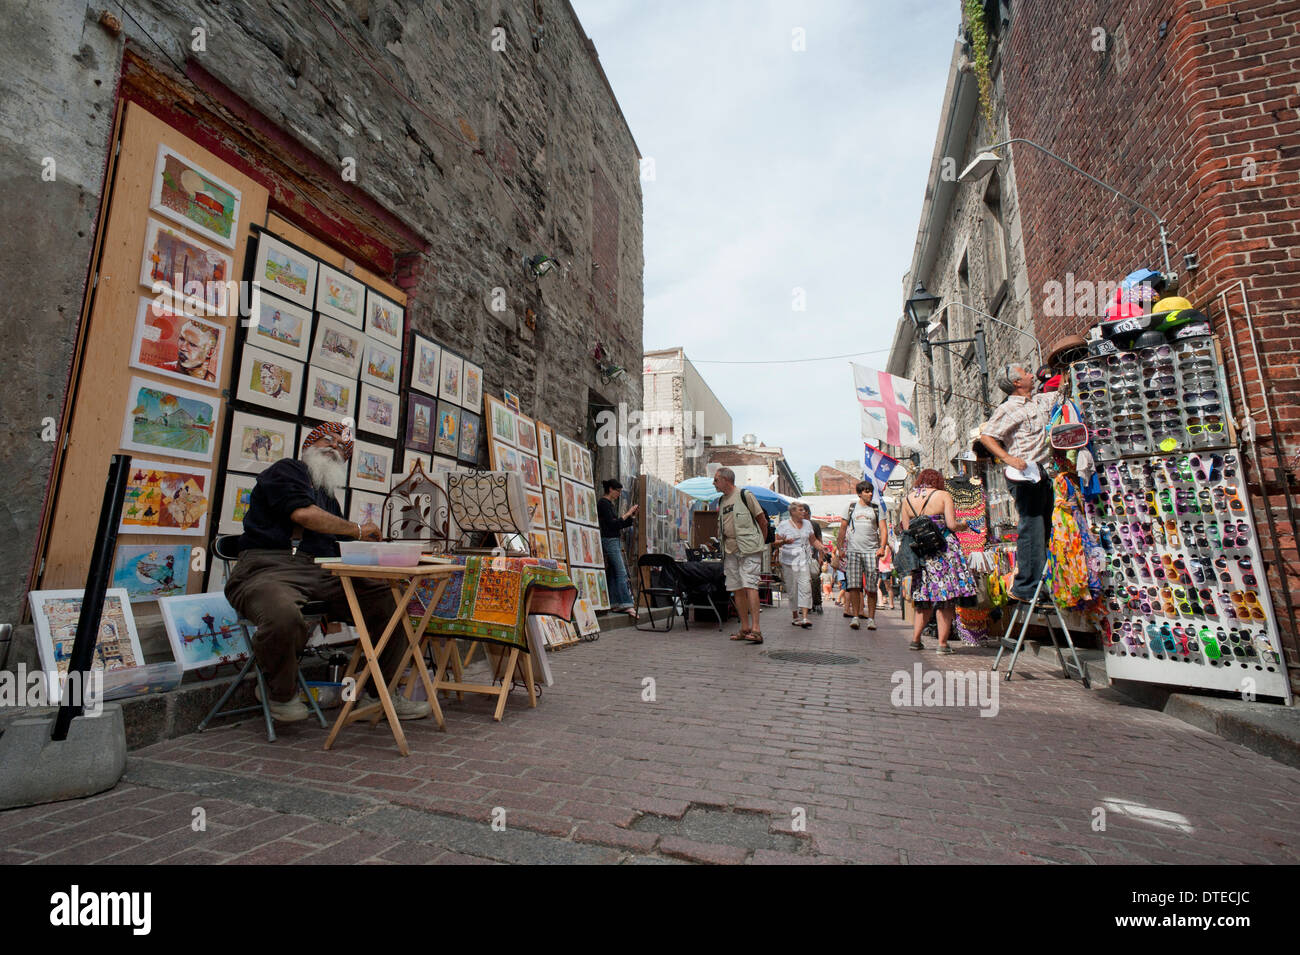 Street vendors on St-Amable street, Old Montreal, province of Quebec, Canada. - Stock Image